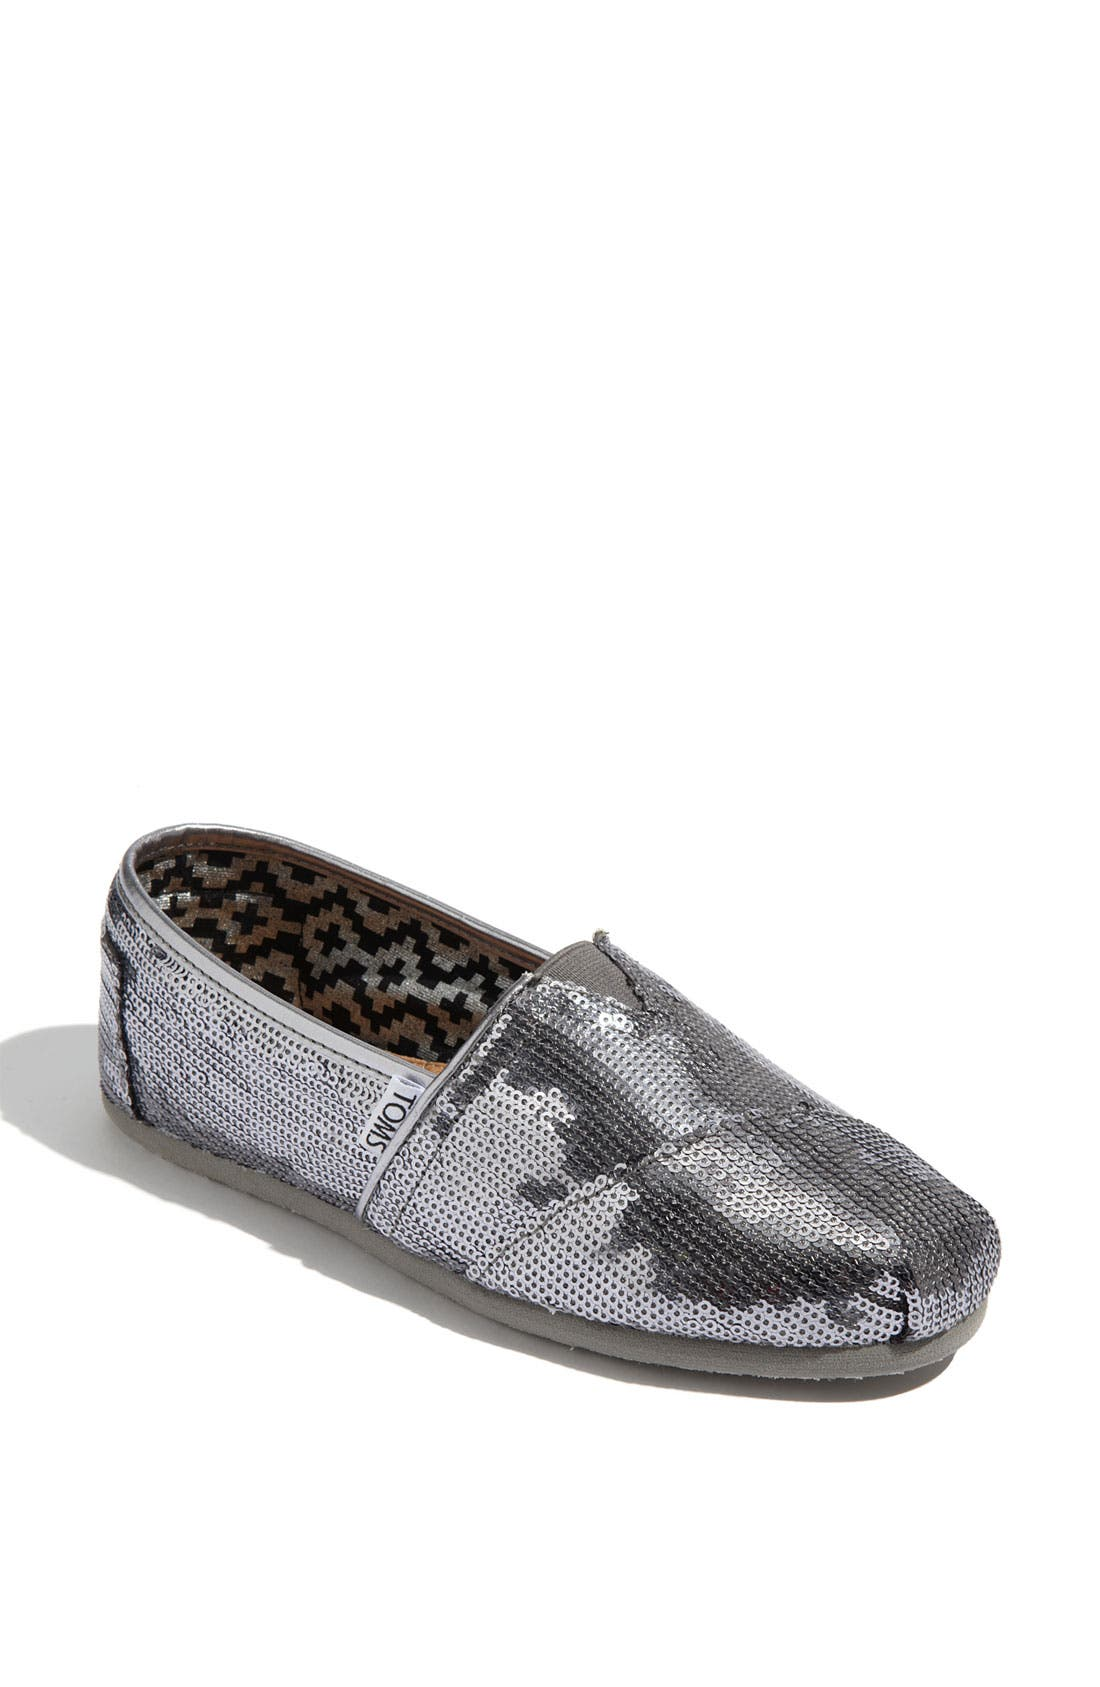 Alternate Image 1 Selected - TOMS 'Classic - Sequins' Slip-On (Women)